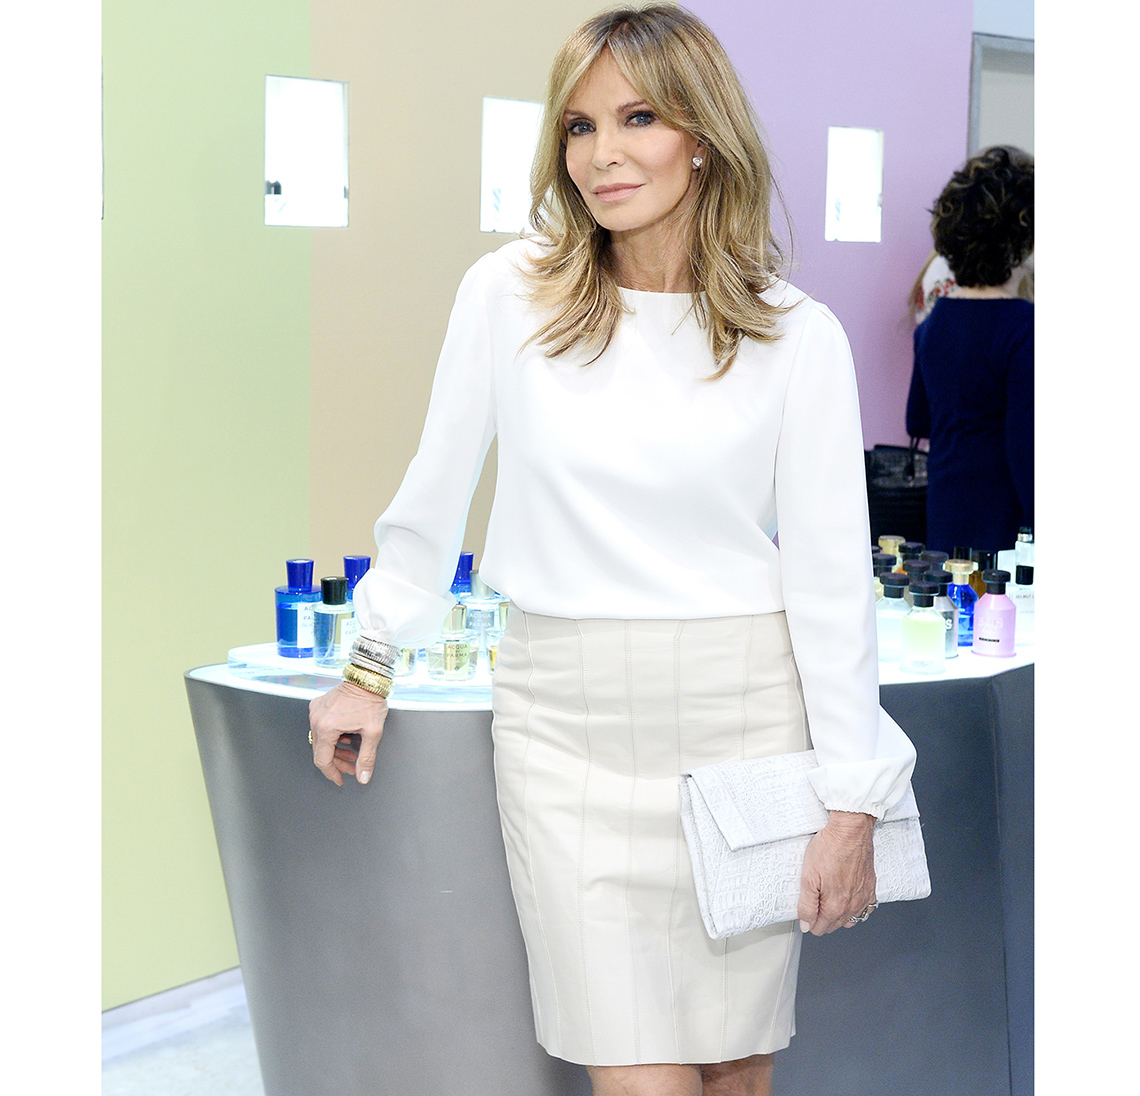 Jaclyn Smith wearing a white blouse.